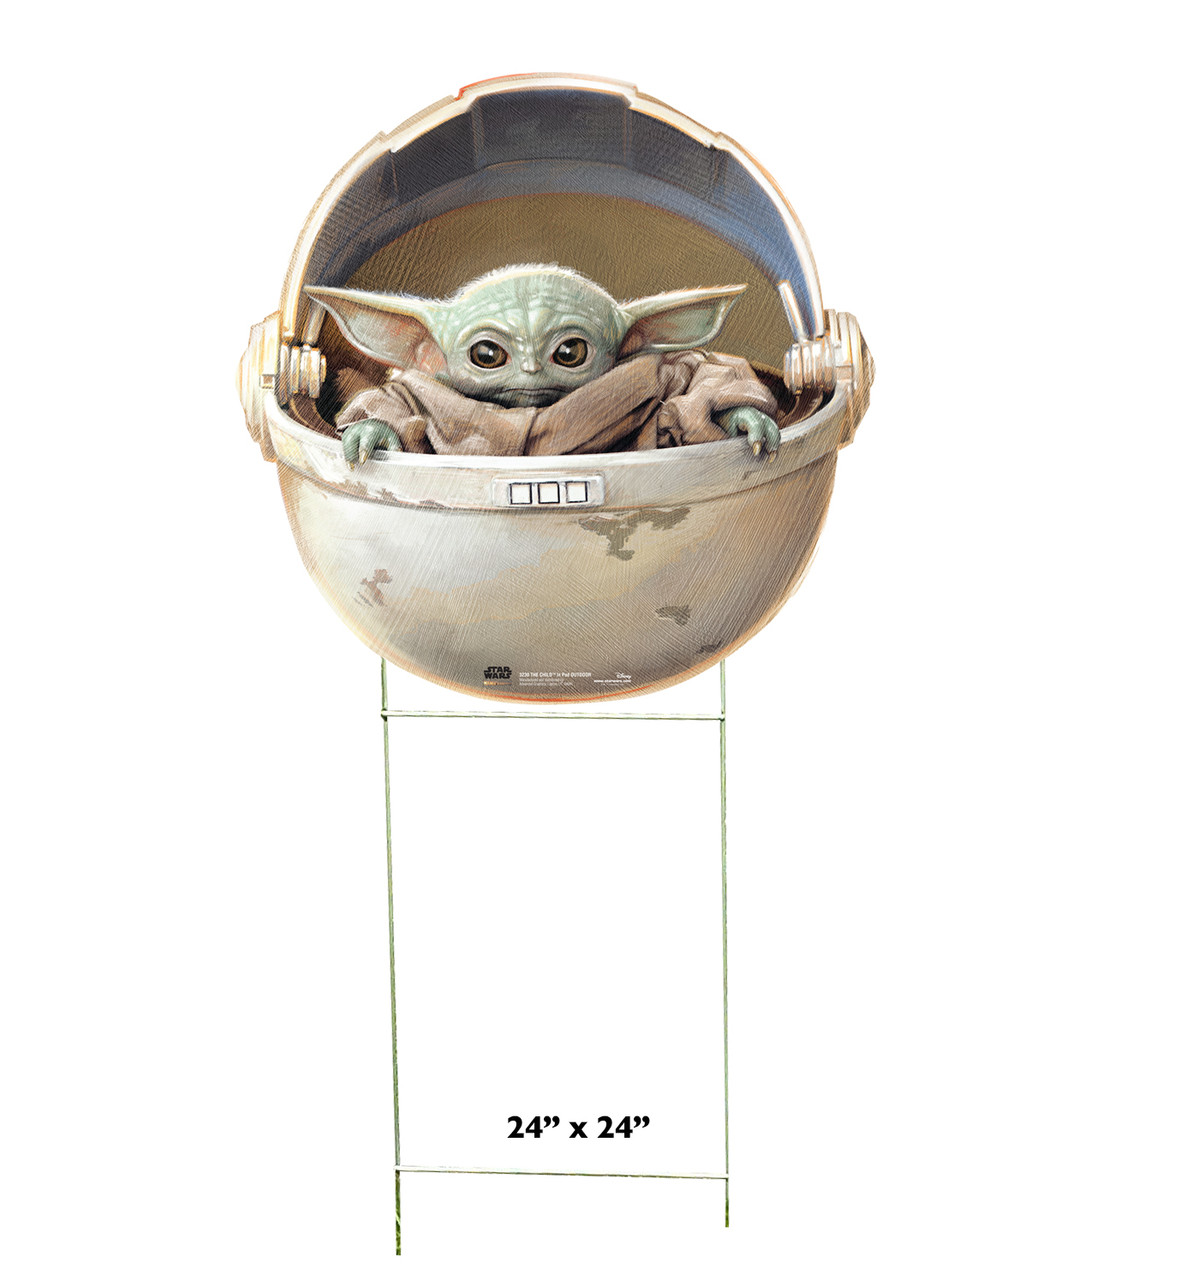 Outdoor coroplast standee of The Child in POD